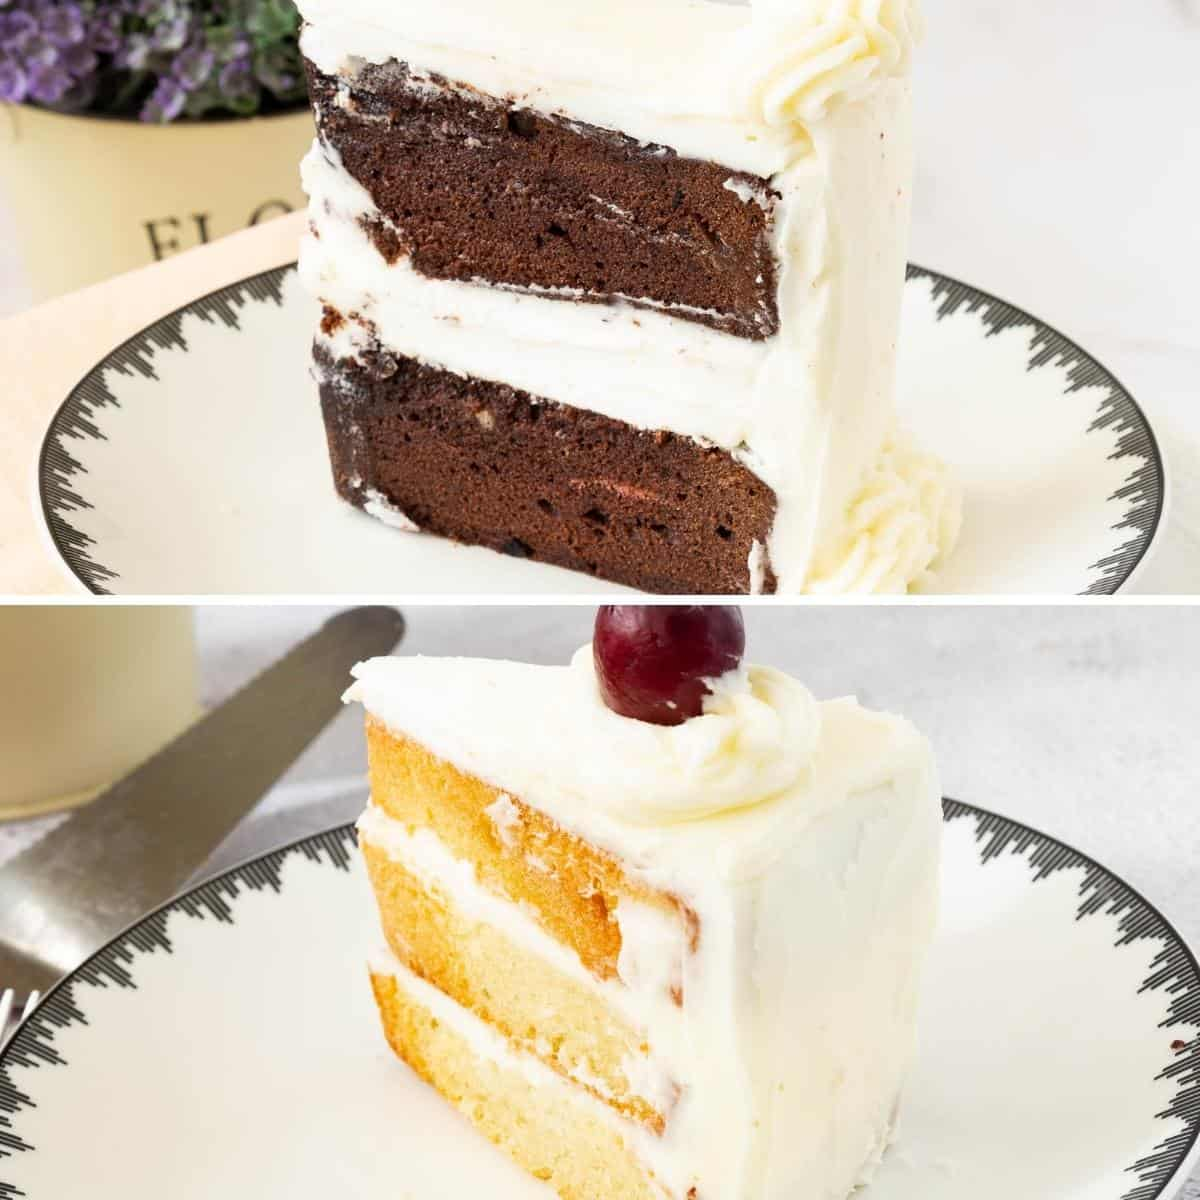 Two slices of cake on the plate.